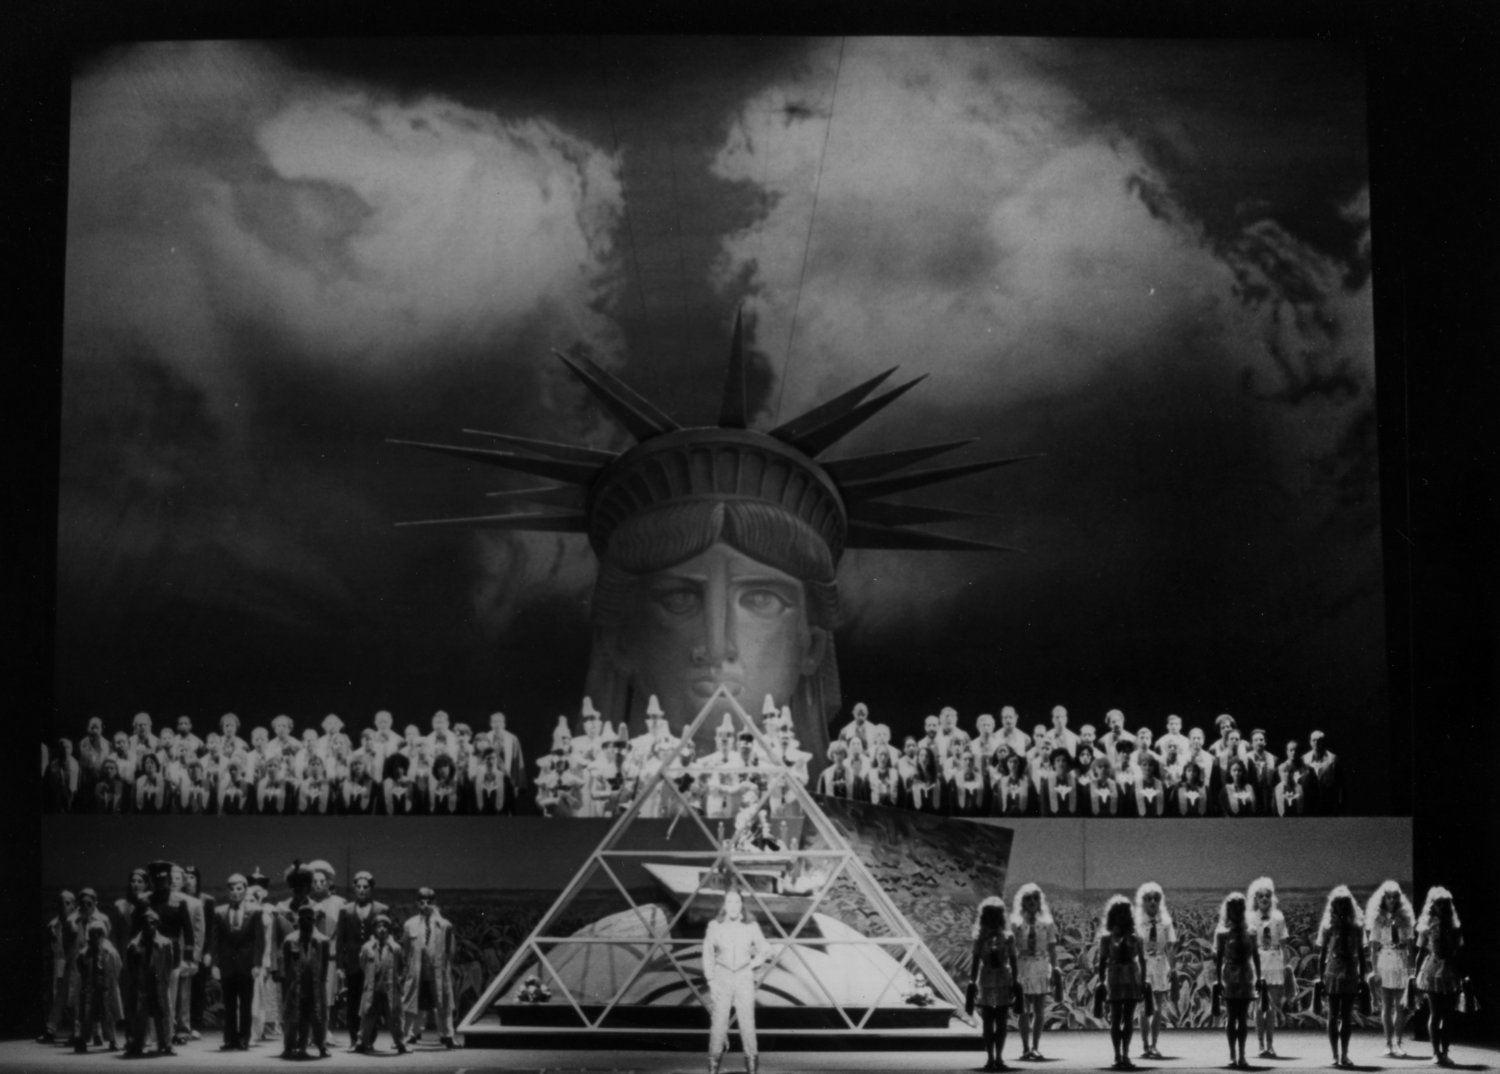 The Voyage at the Metropolitan Opera in New York City. Photo by Winnie Klotz.